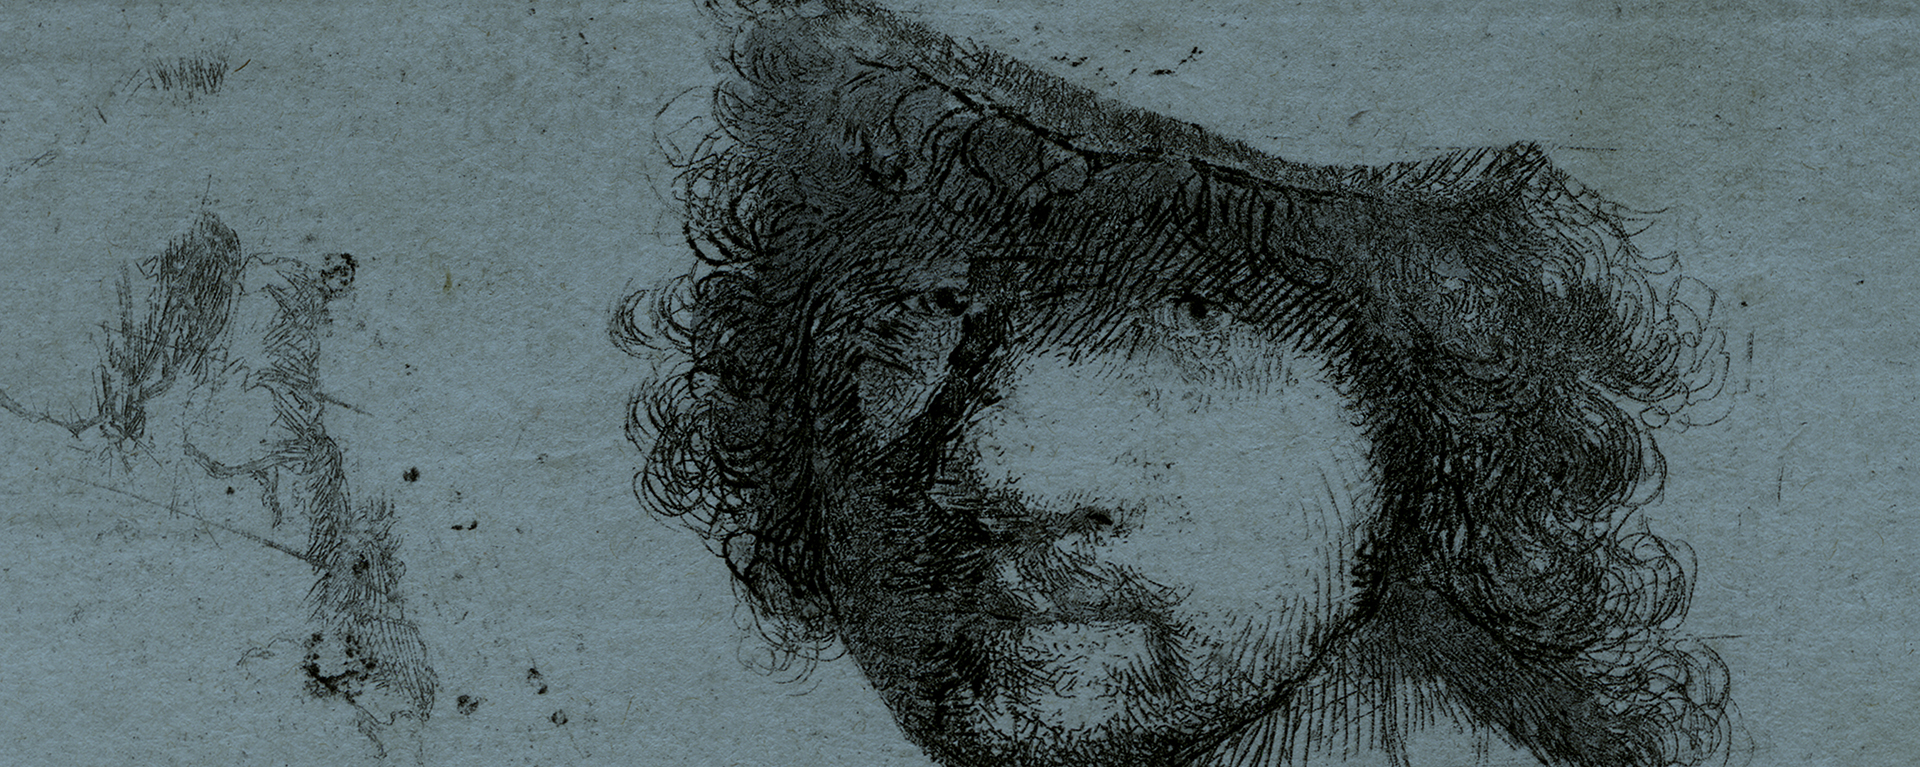 Rembrandt Van Rijn - etching - head of artist